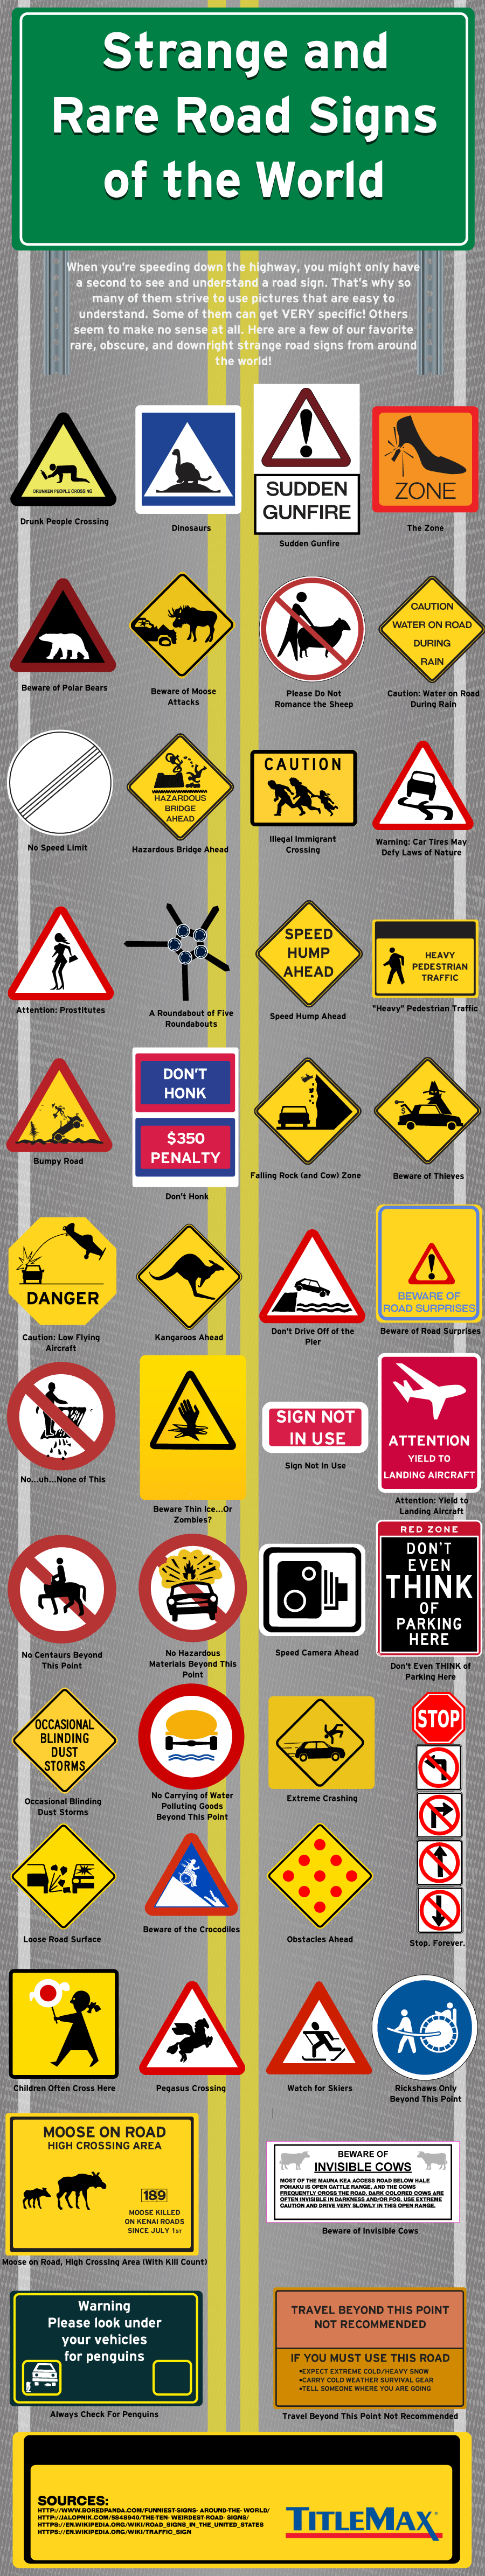 Strange and Rare Road Signs from Around the World